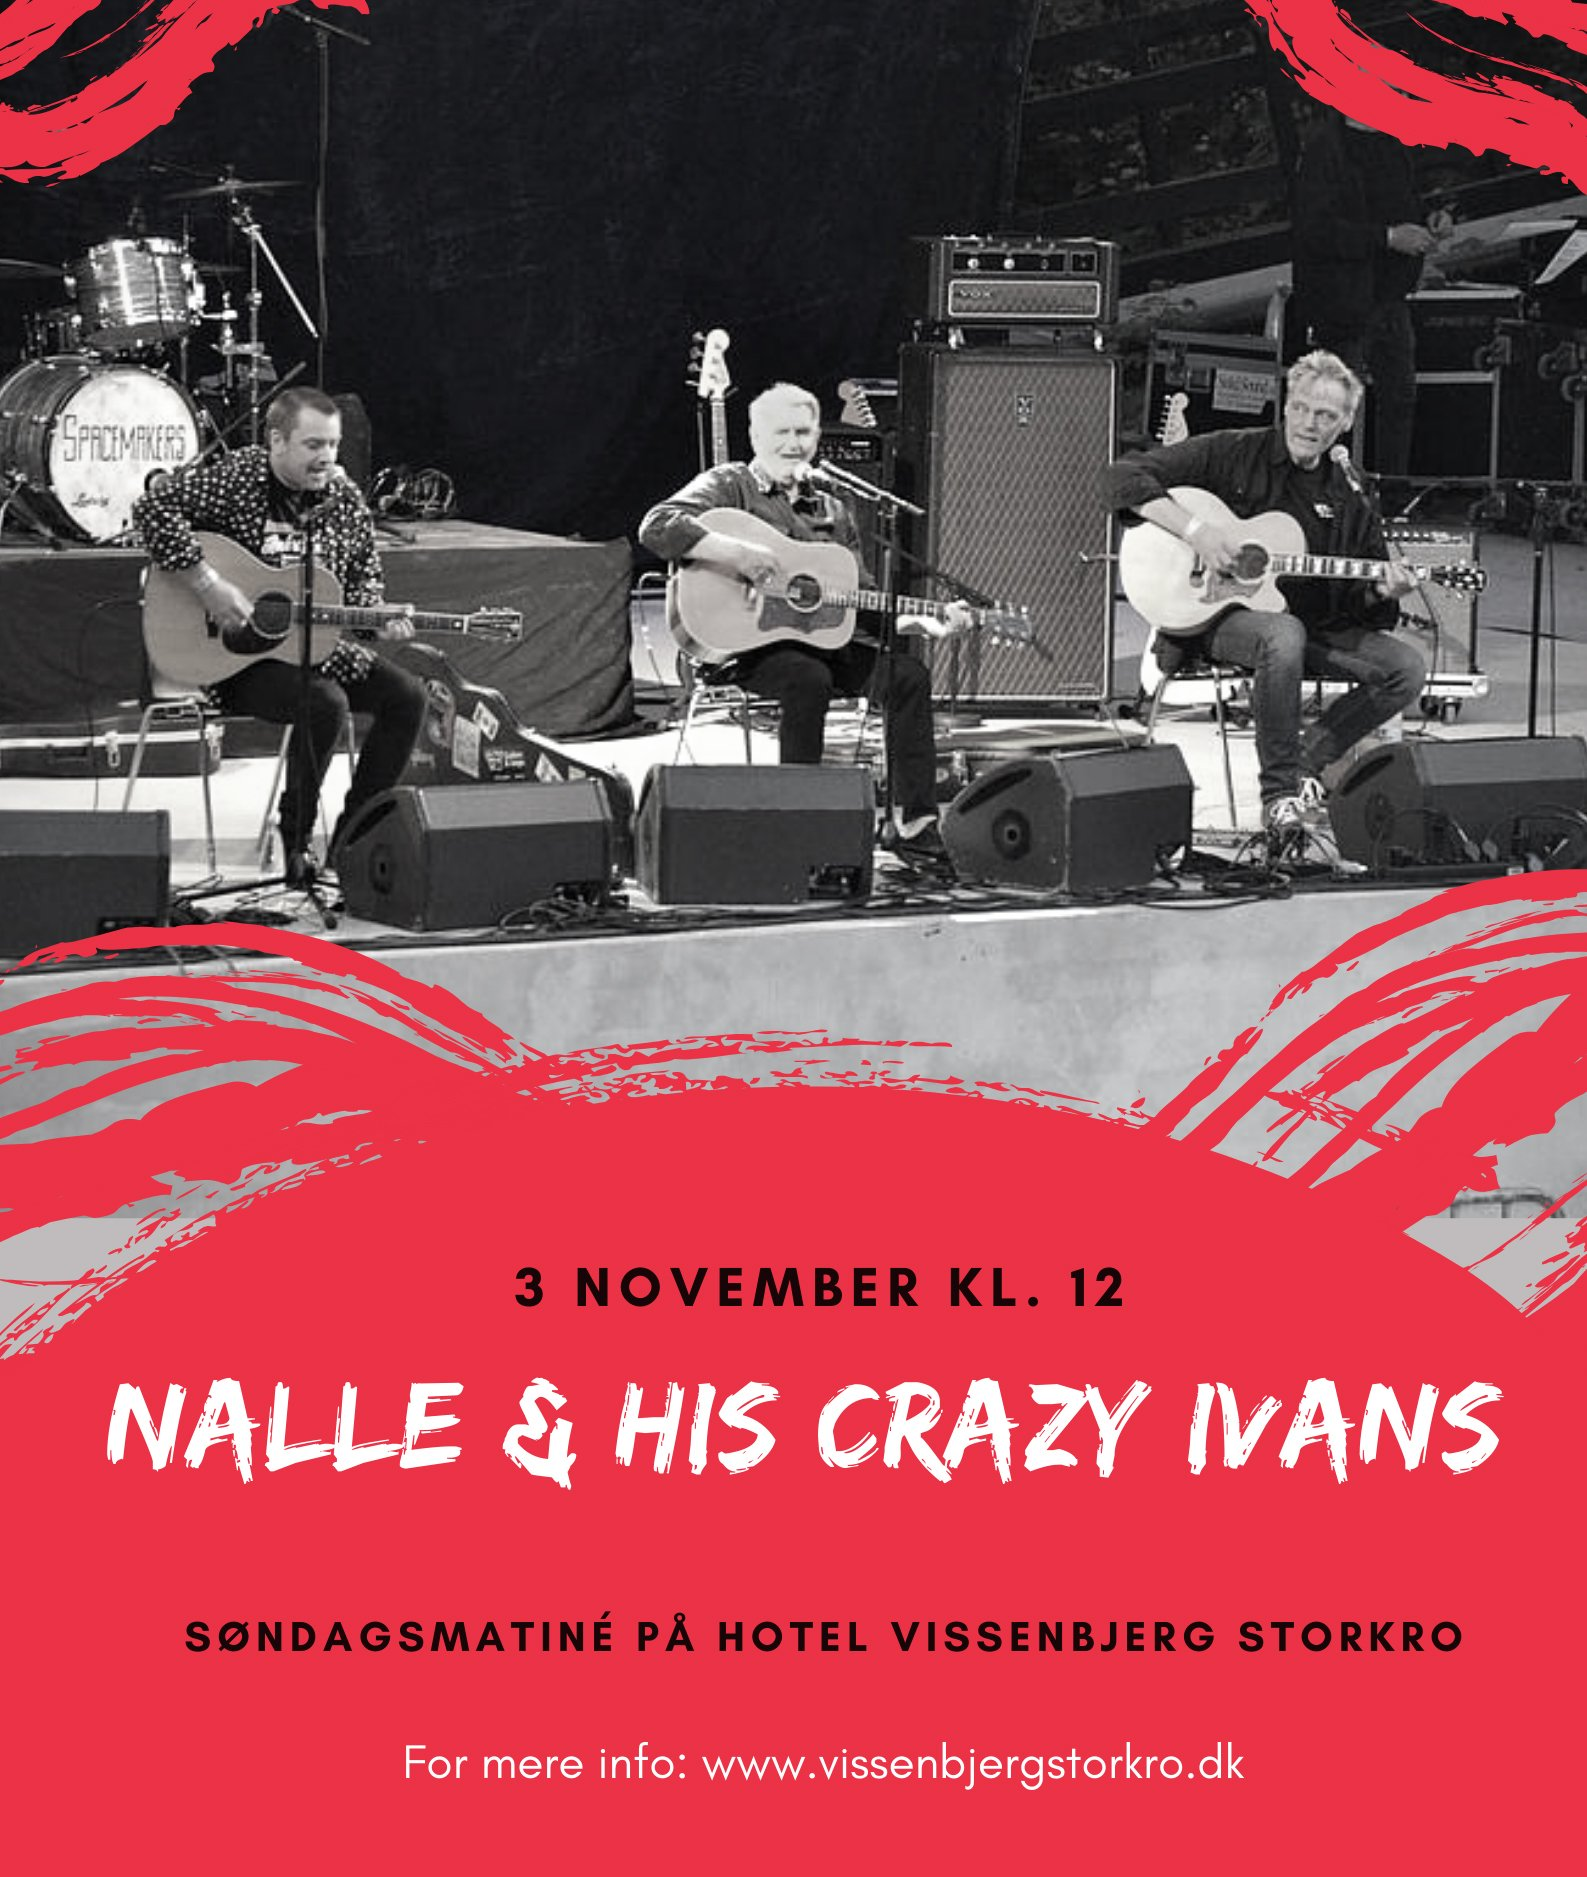 nalle-and-his-crazy-ivans